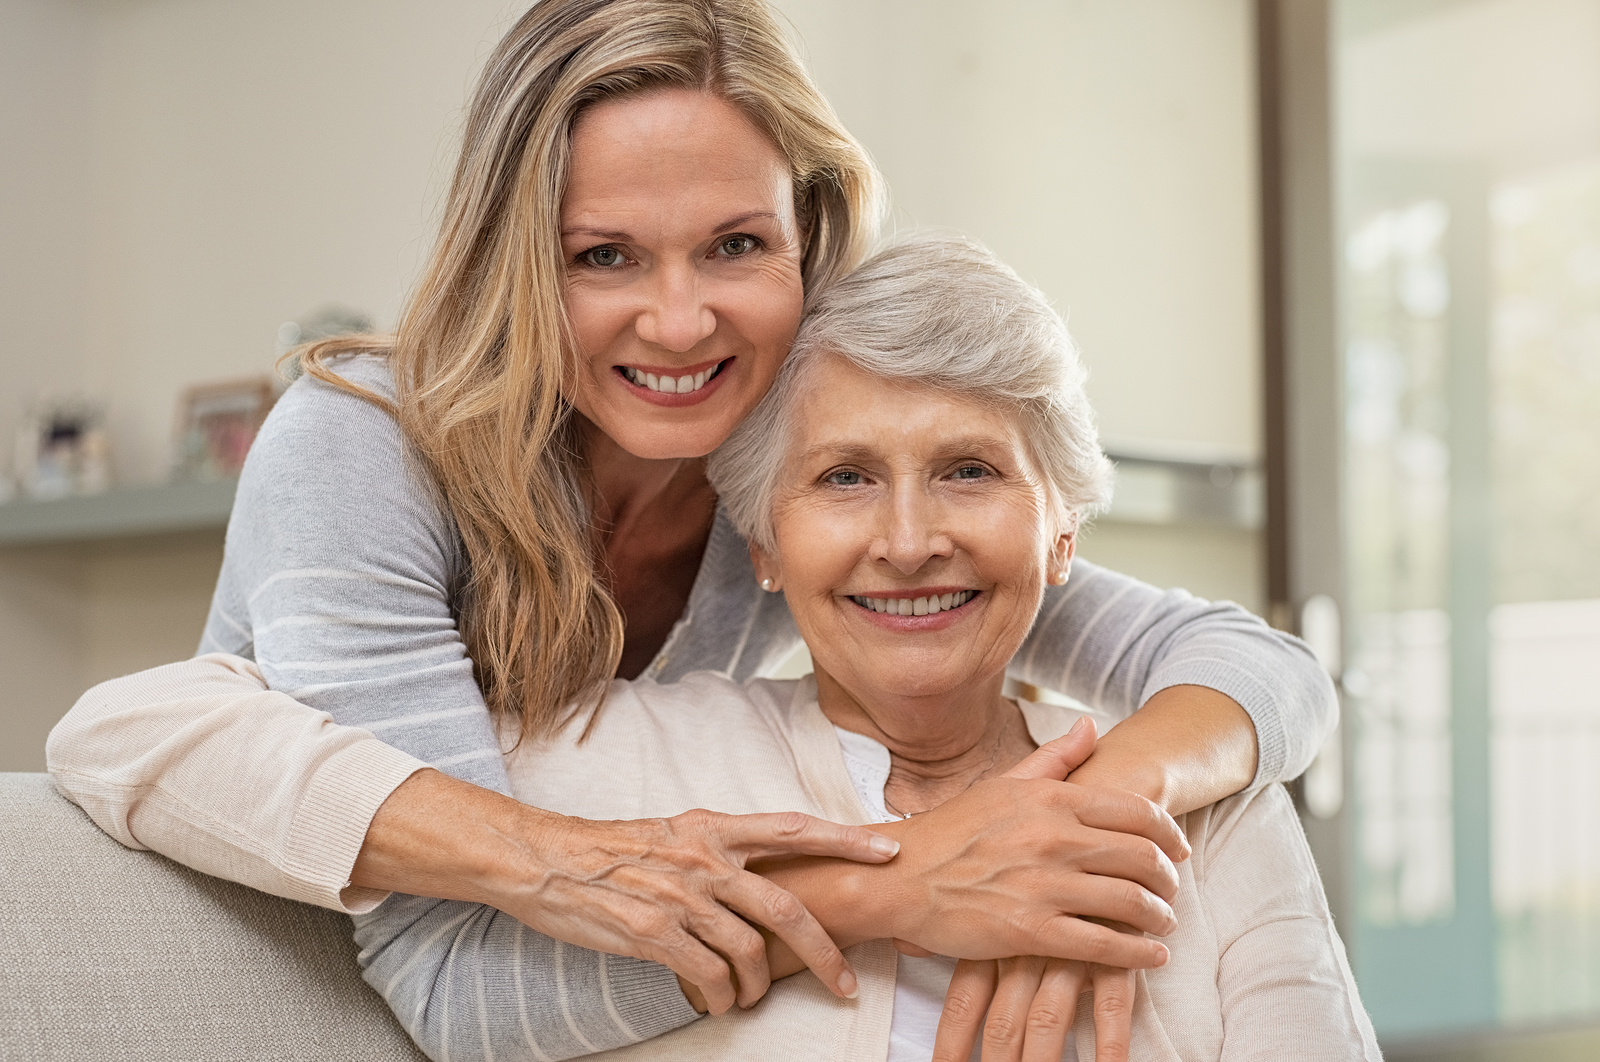 Portrait of elderly mother and middle aged daughter smiling together